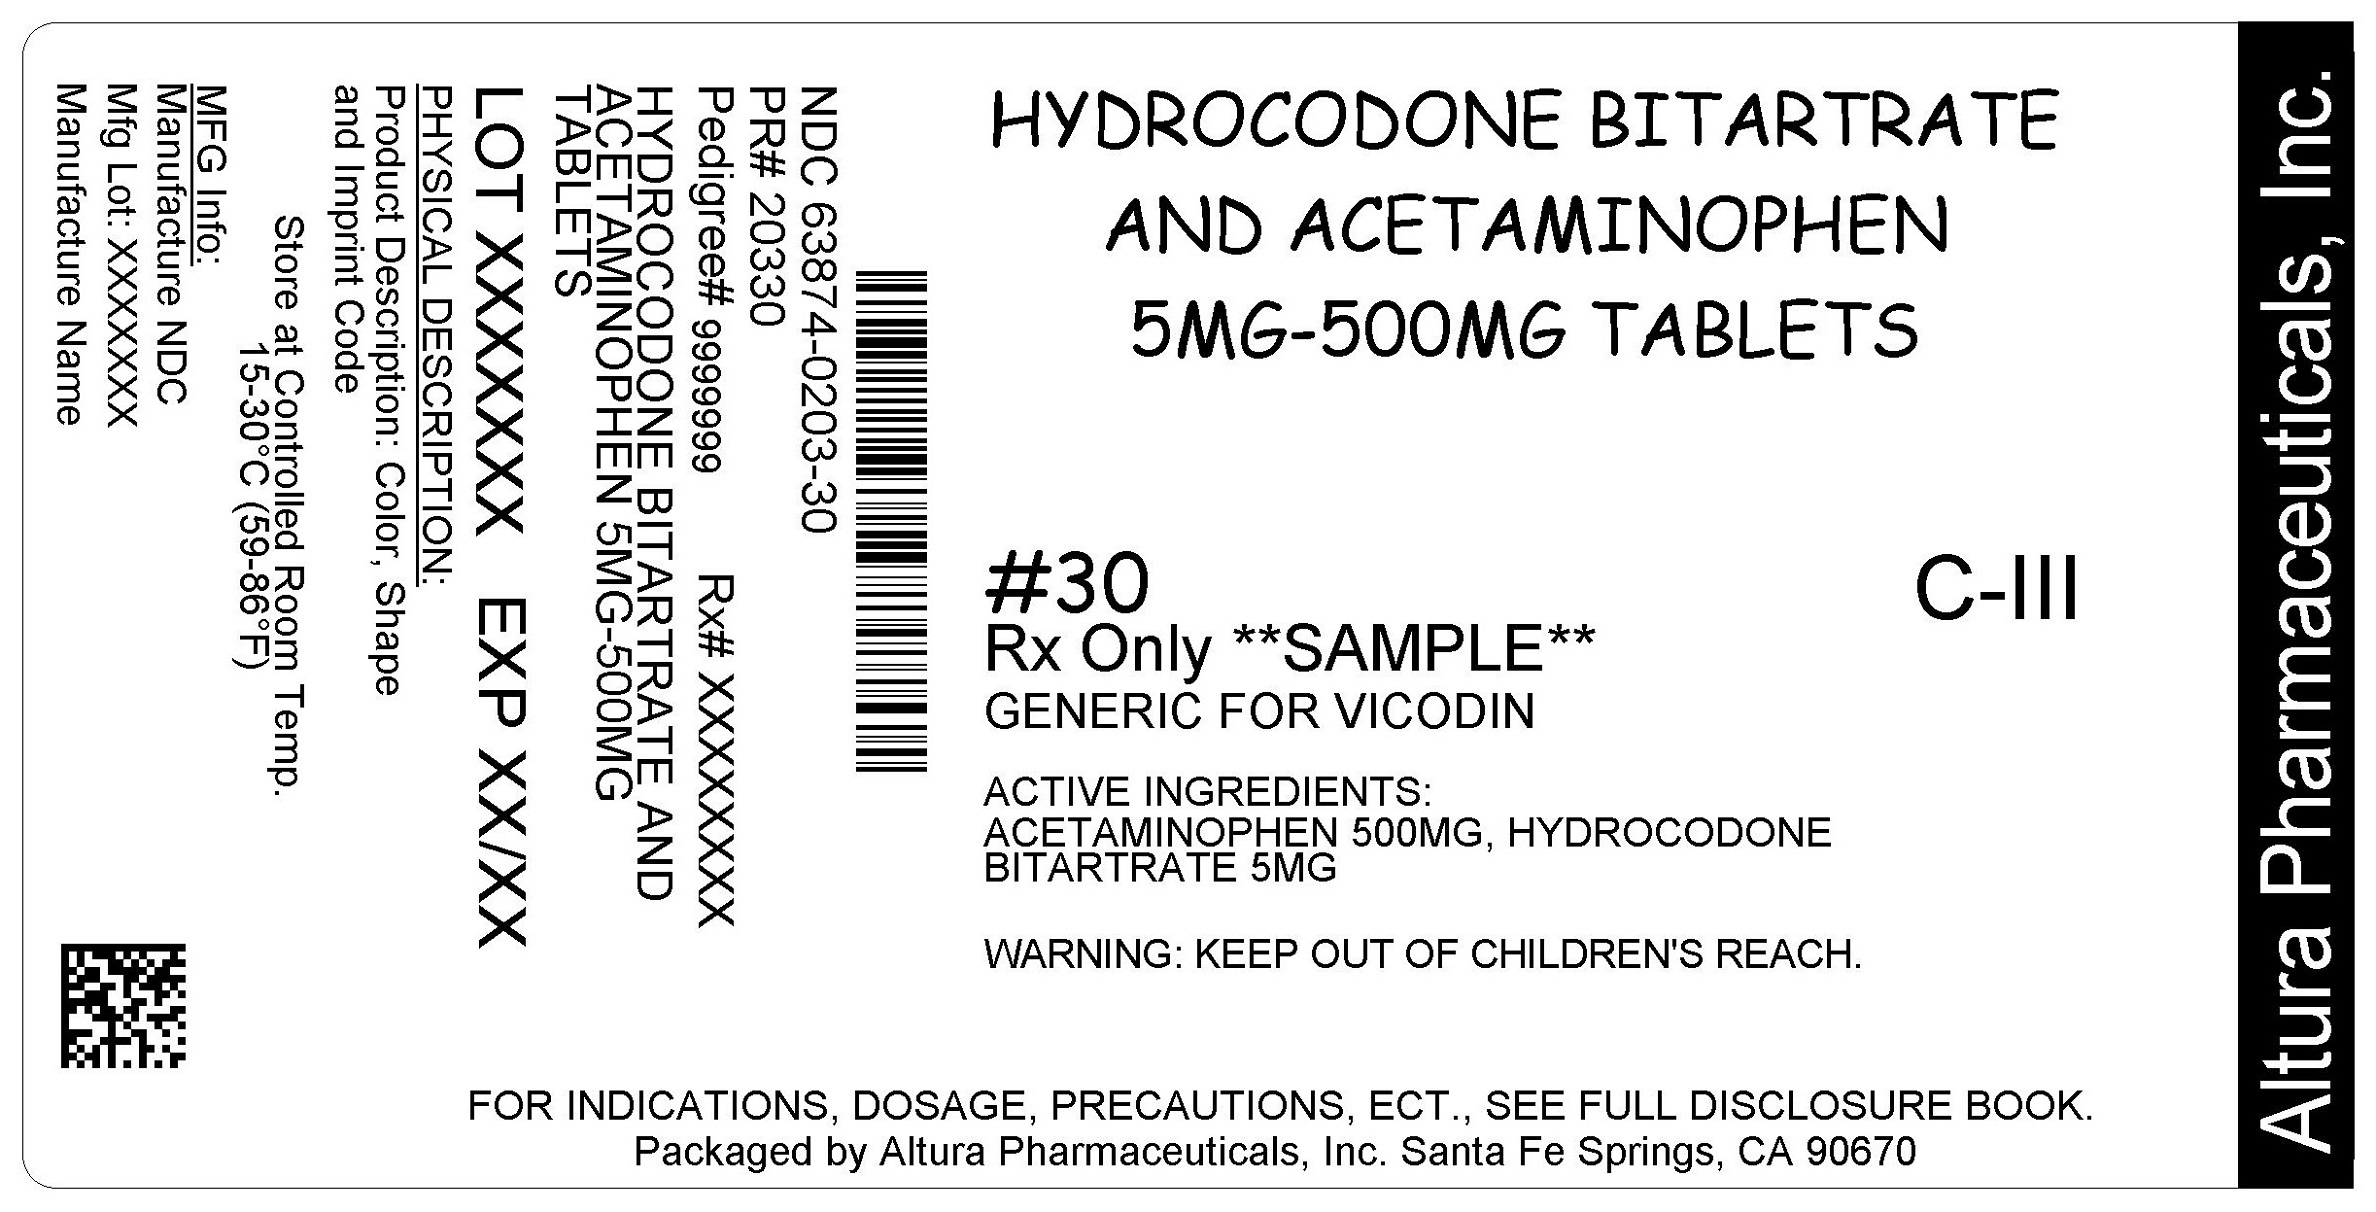 This is an image of the label for 5 mg/500 mg Hydrocodone Bitartrate and Acetaminophen Tablets.